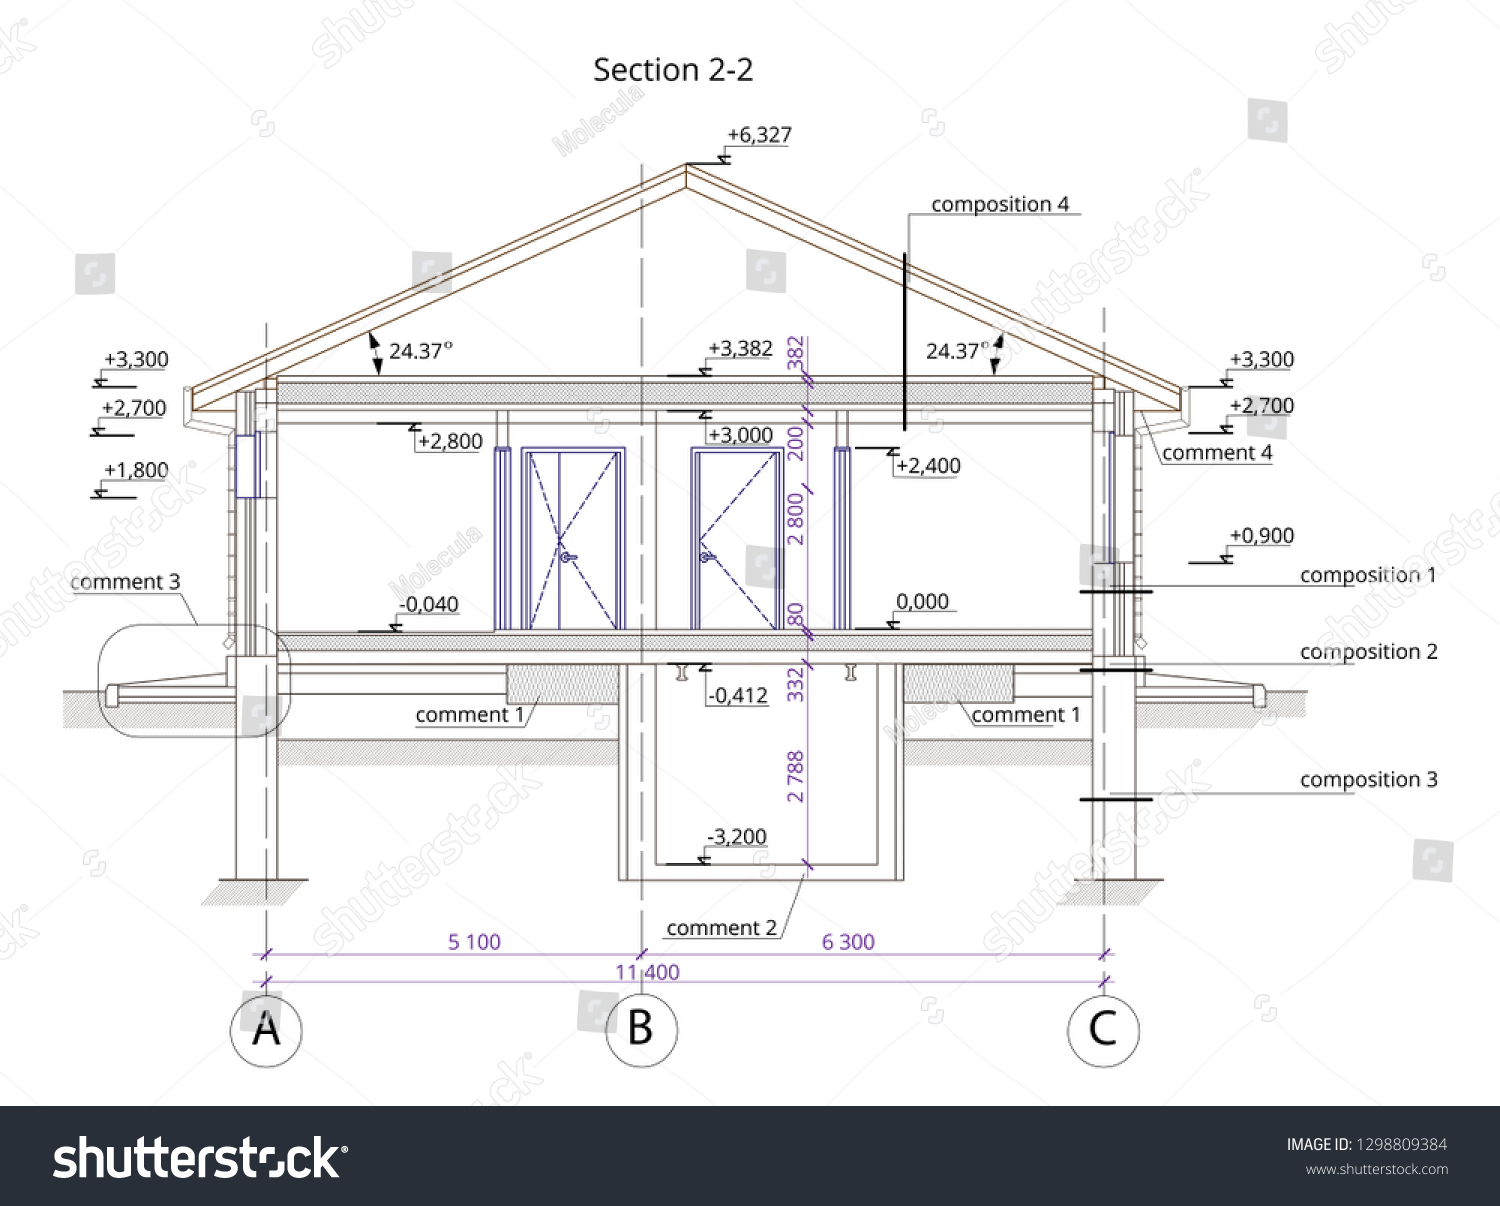 Architectural section of a one storey residential building